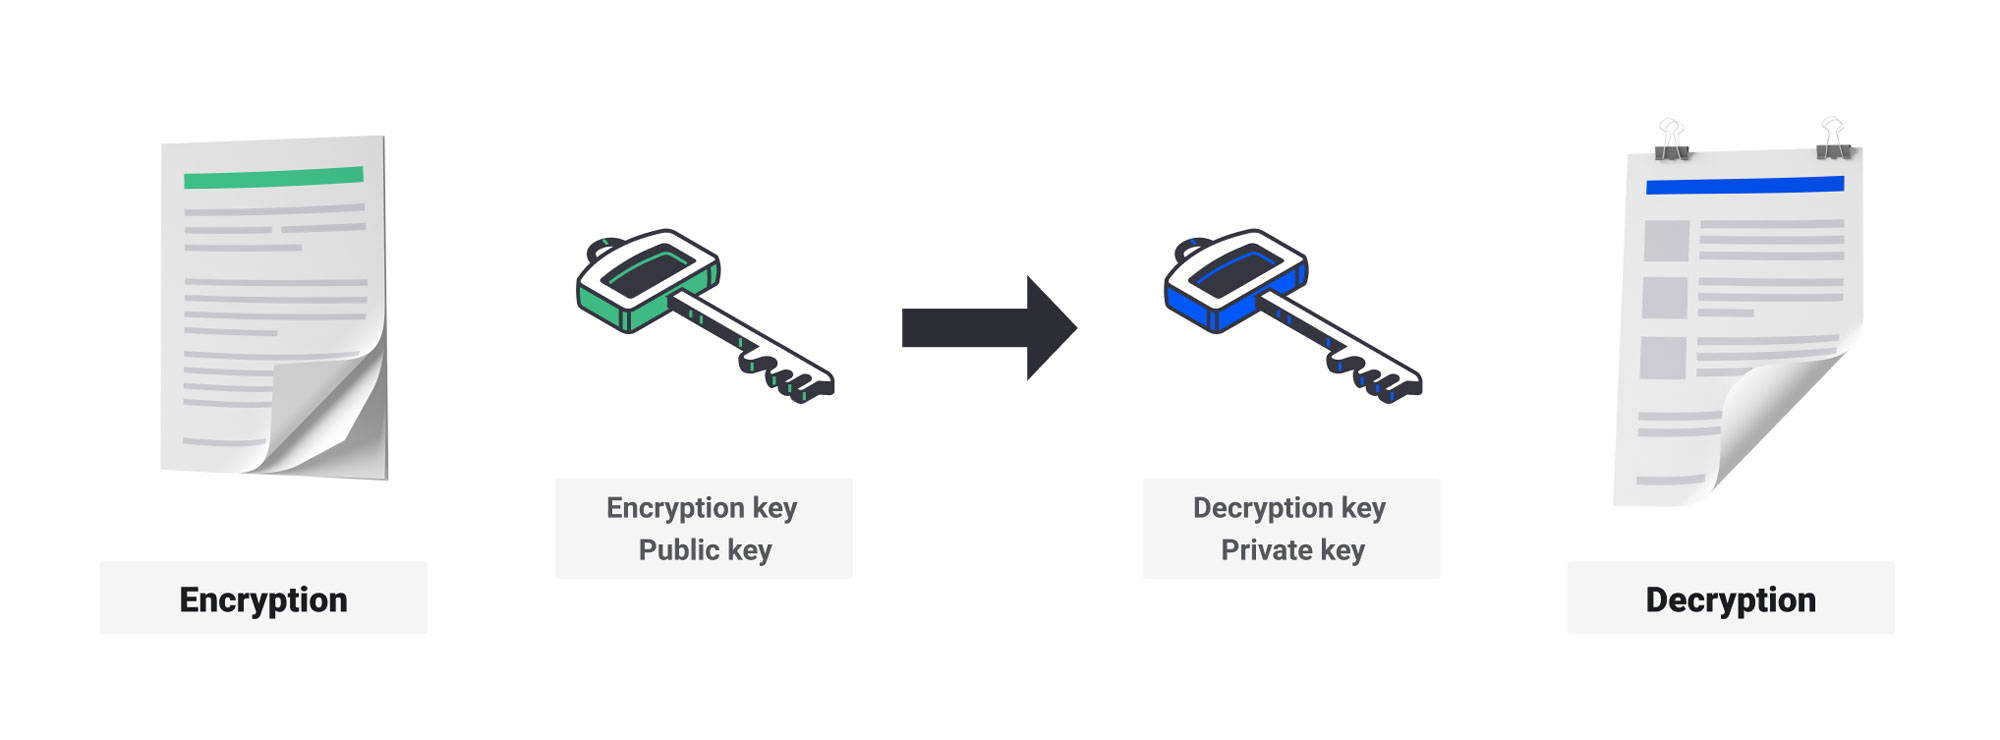 Private and public keys - encryption and decryption